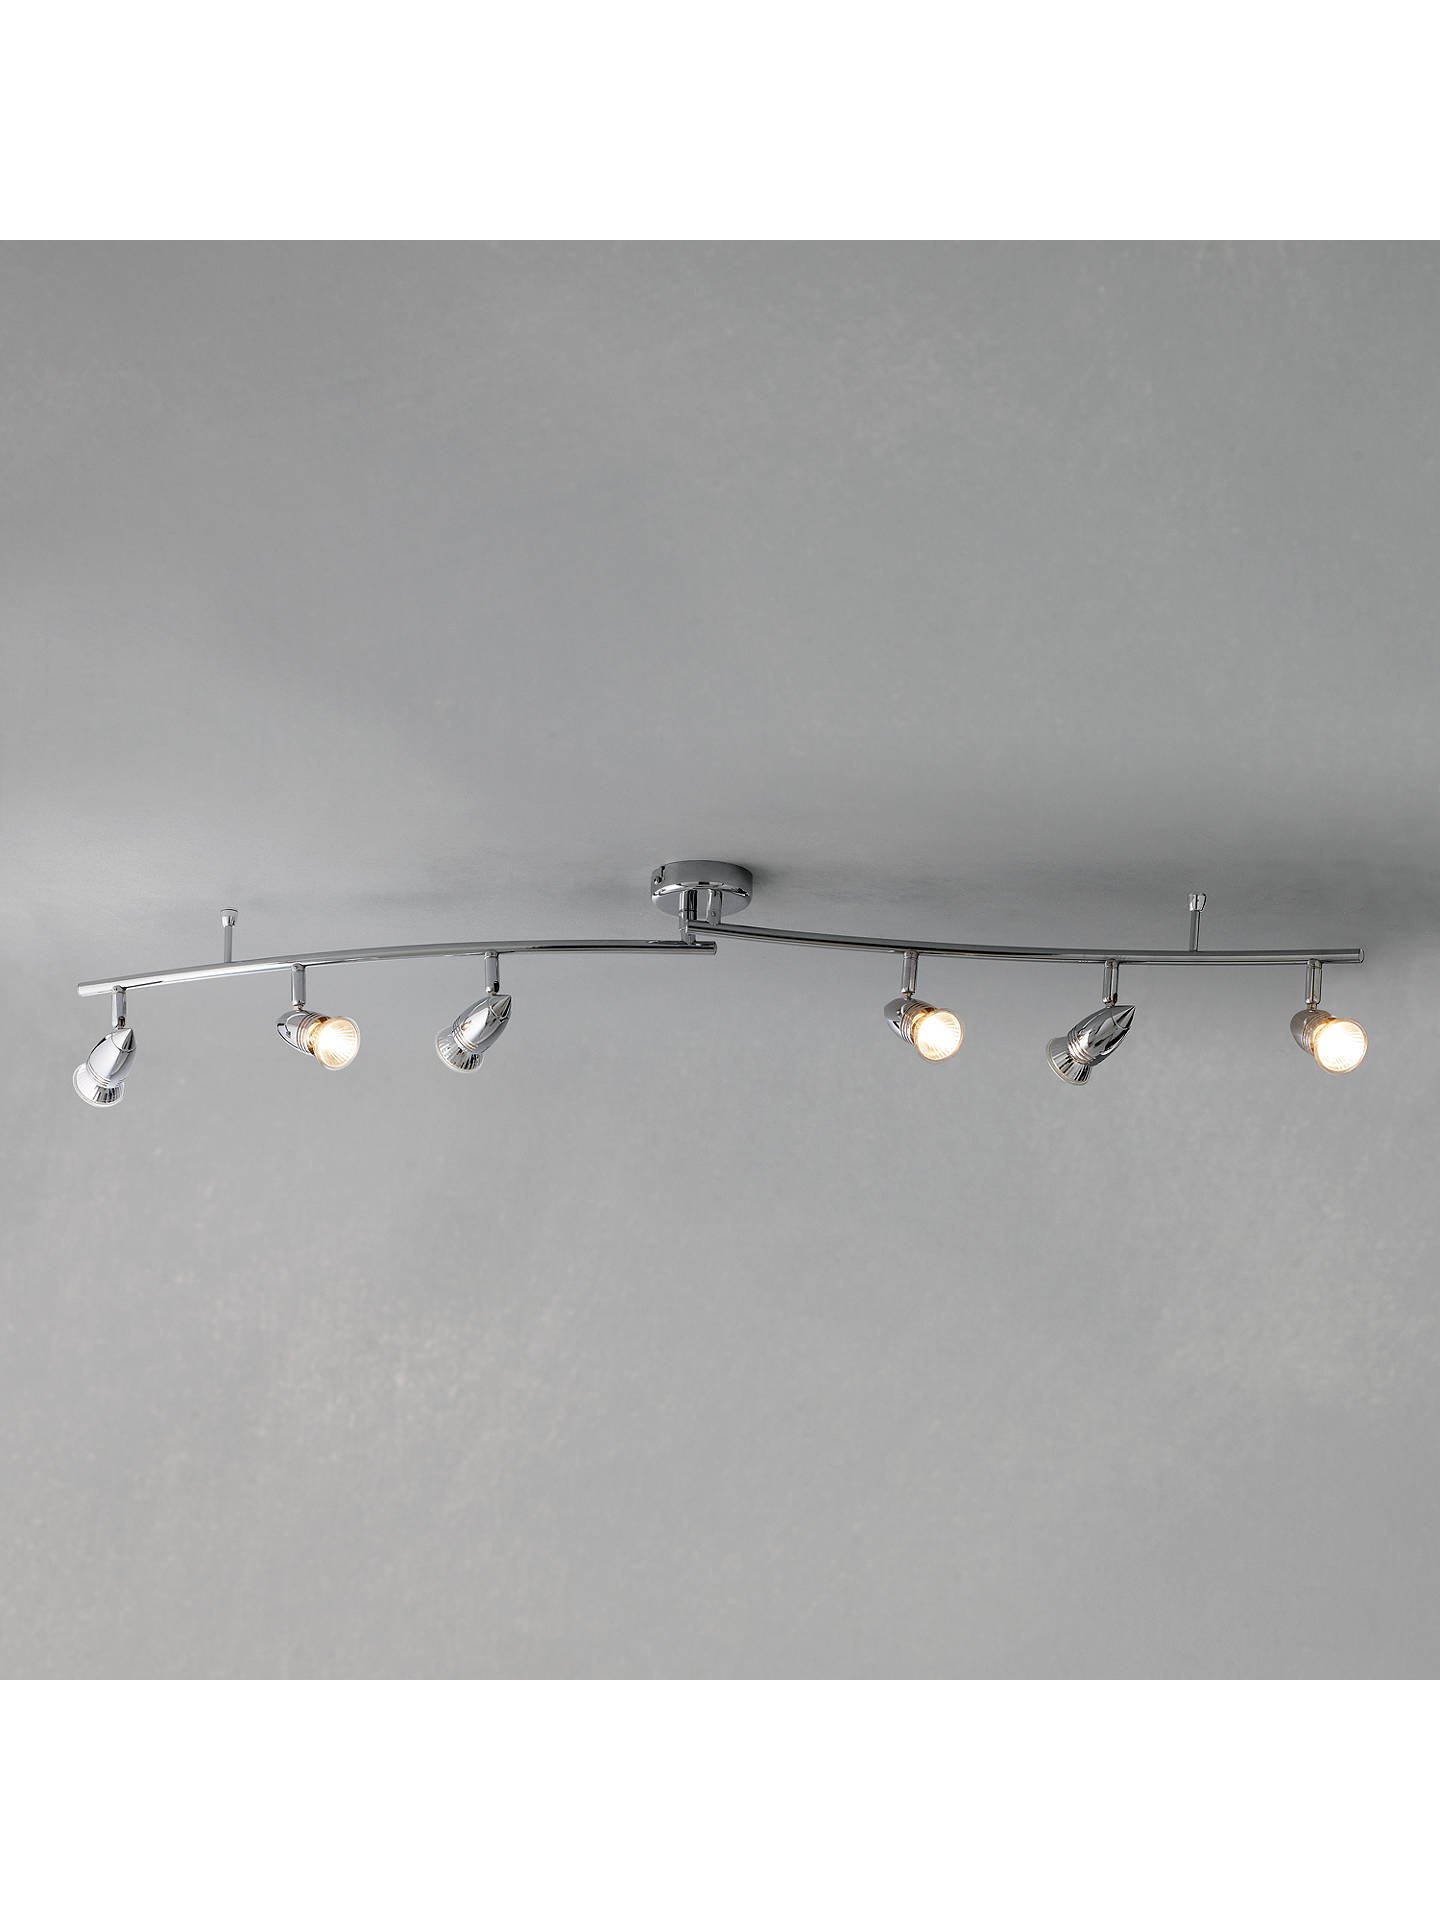 Buy John Lewis Soyuz 6 Halogen Spotlight Ceiling Bar, Polished Steel Online at johnlewis.com